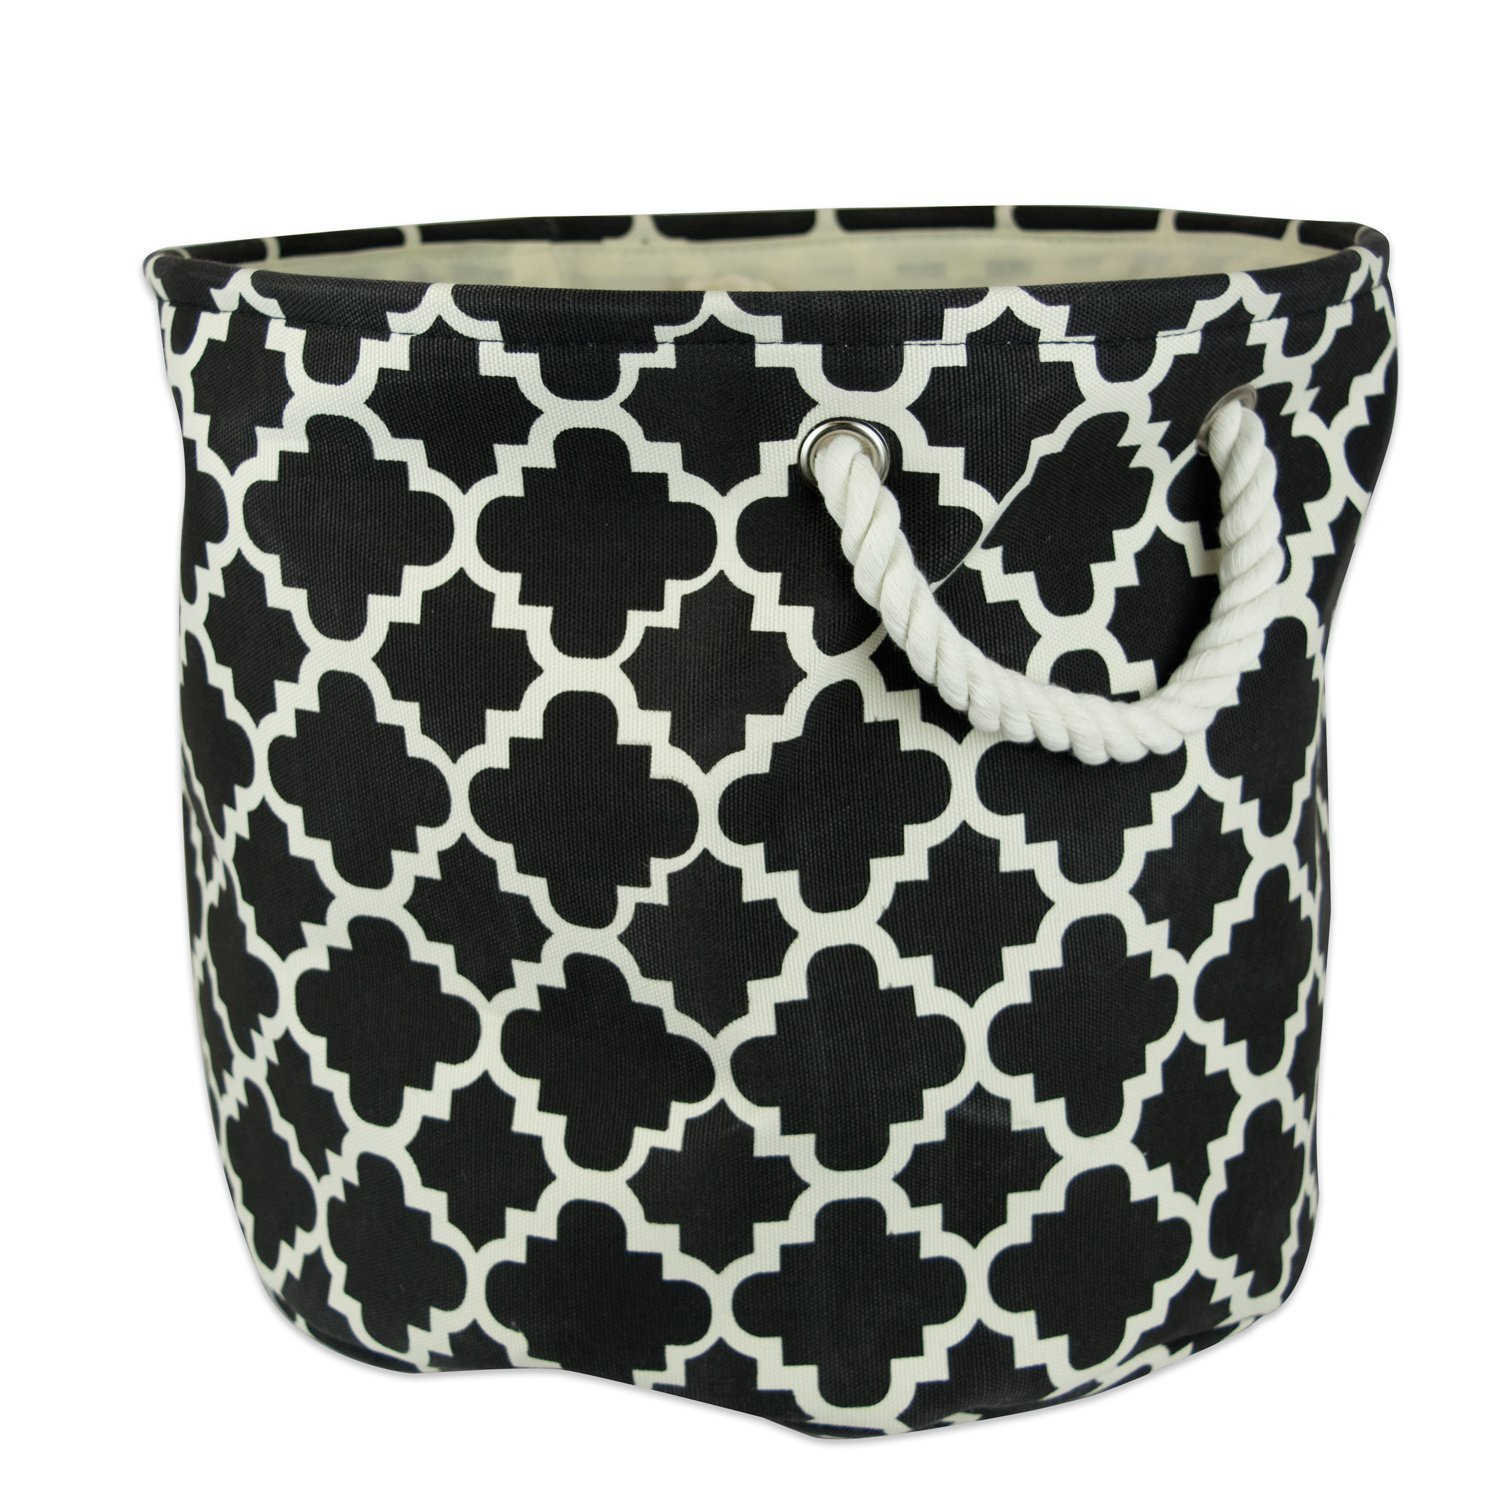 DII Printed Polyester, Collapsible and Convenient Storage Bin To Organize Office, Bedroom, Closet, Kid's Toys, Laundry - Small Rectangle, Black Lattice Kid' s Toys CAMZ36069